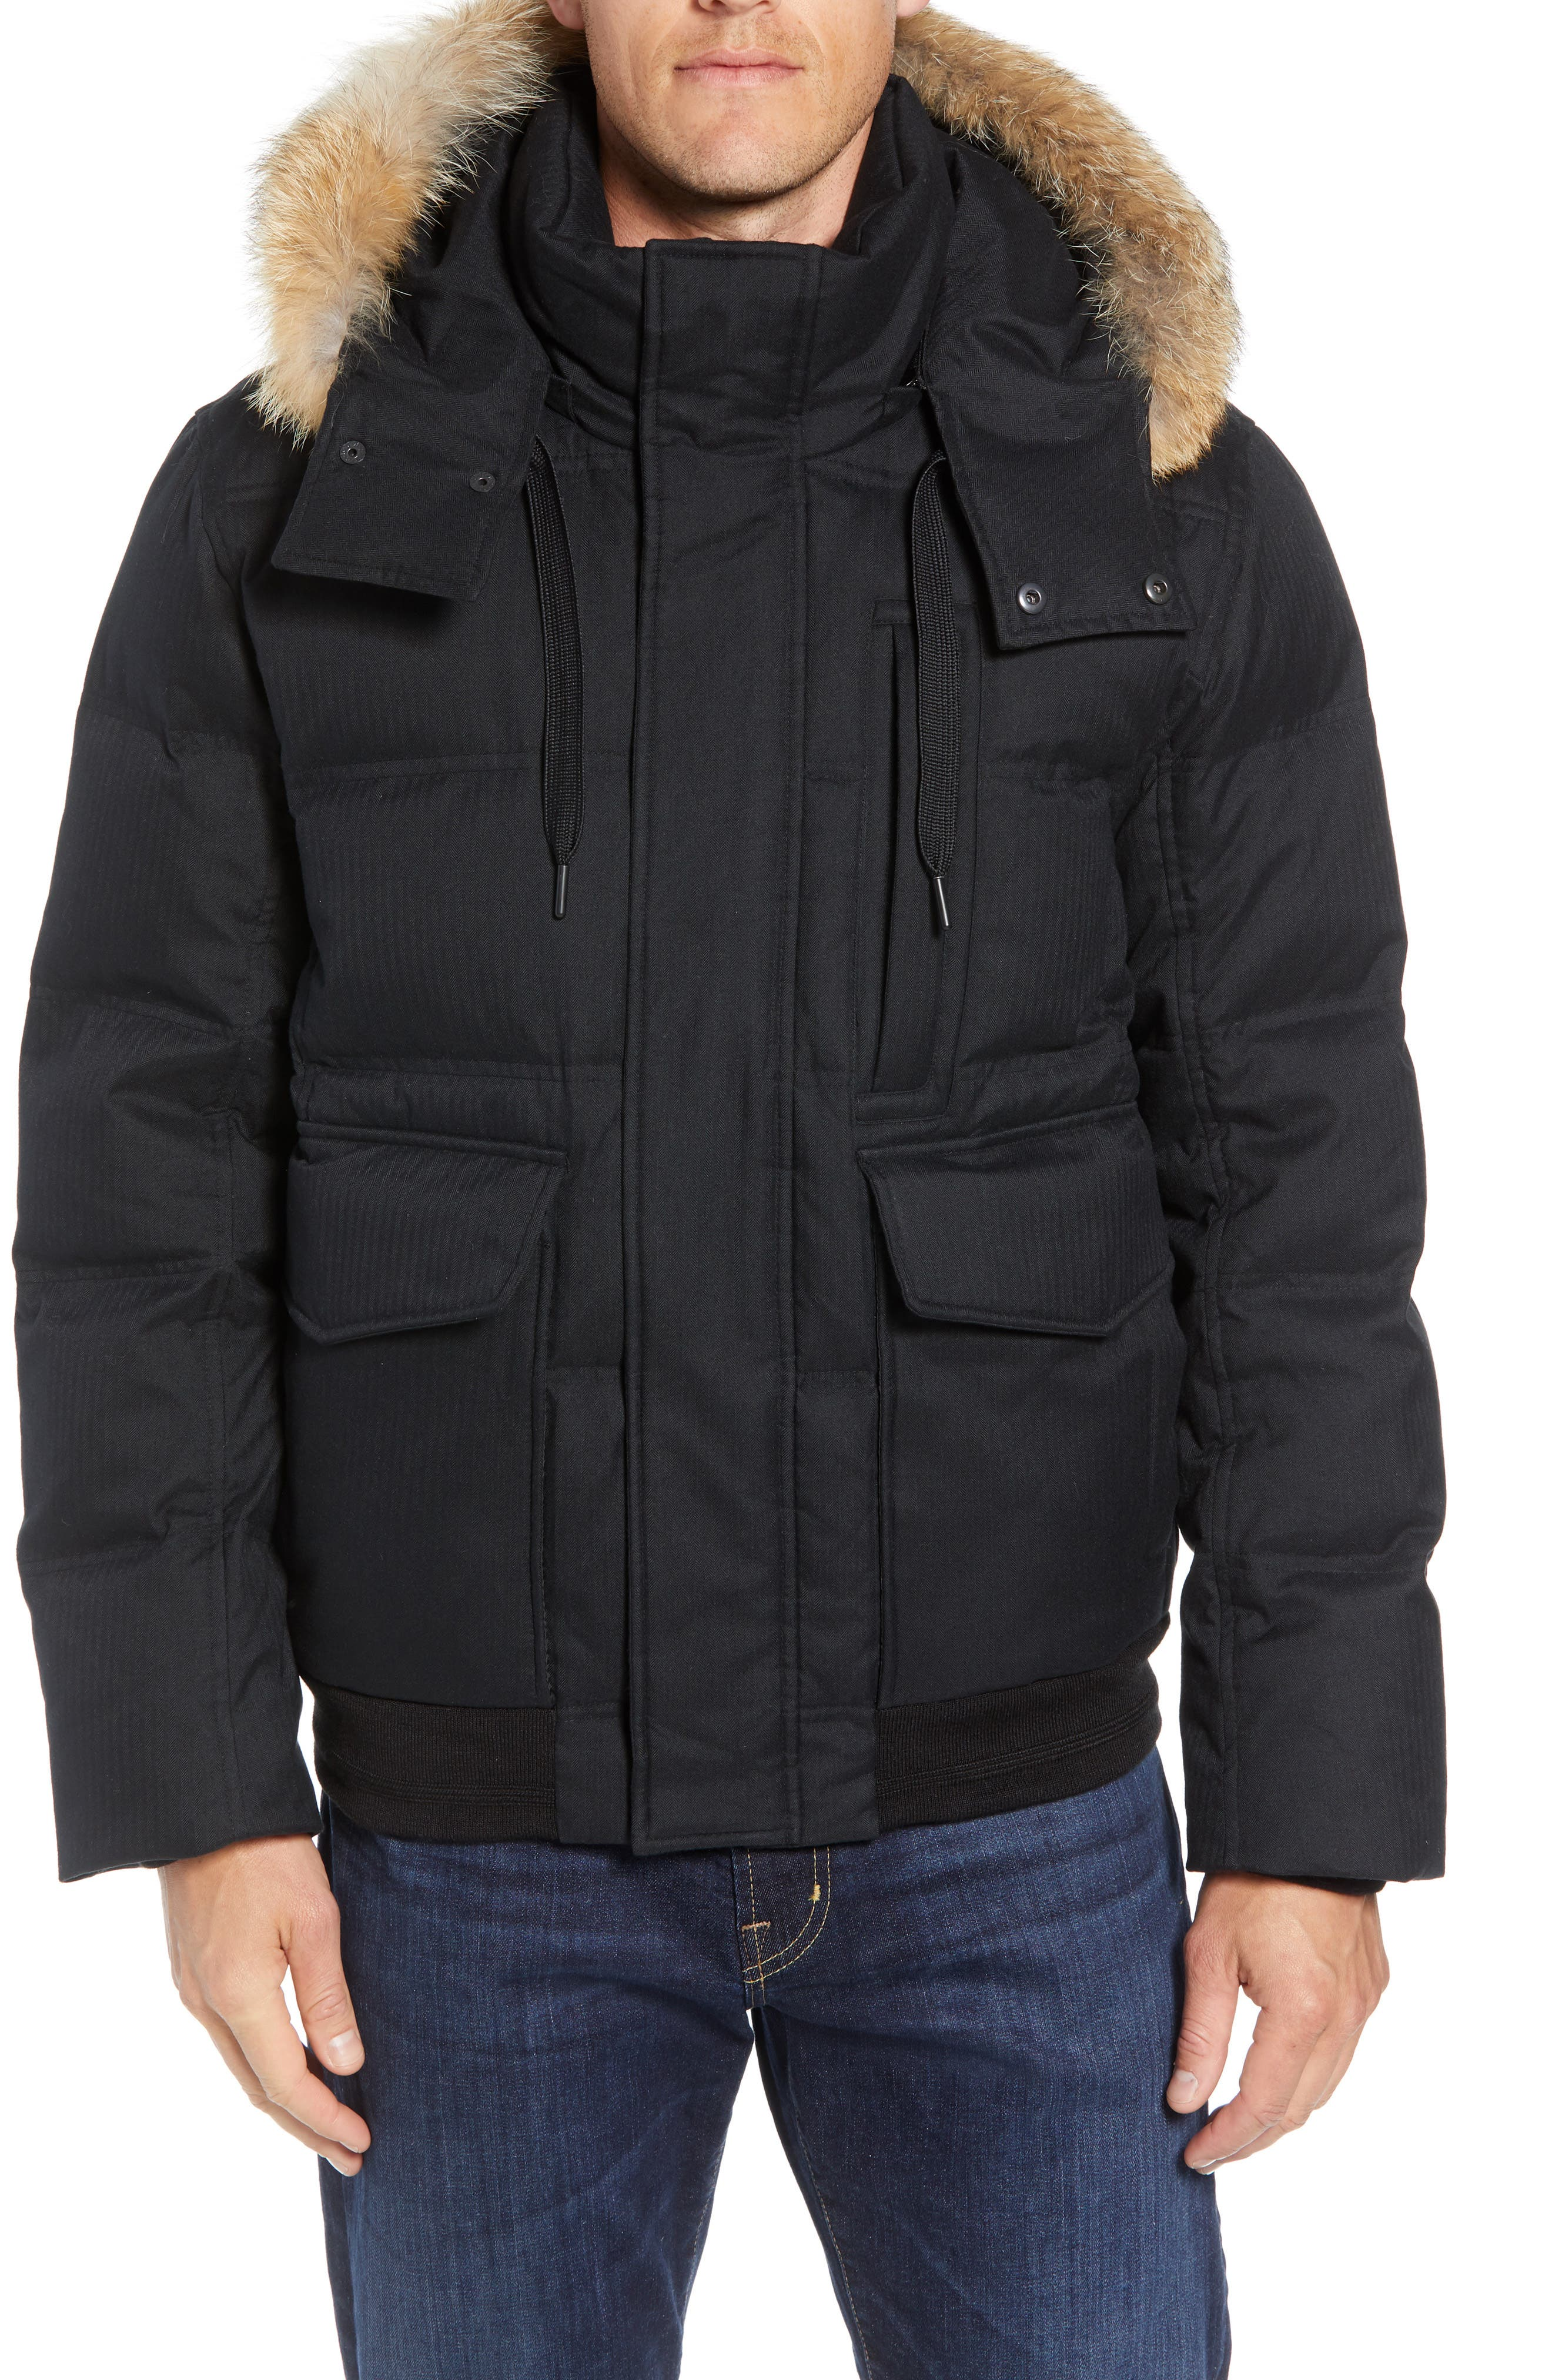 Bohlen Down & Feather Bomber Jacket with Removable Genuine Coyote Fur Trim Hood,                         Main,                         color, BLACK